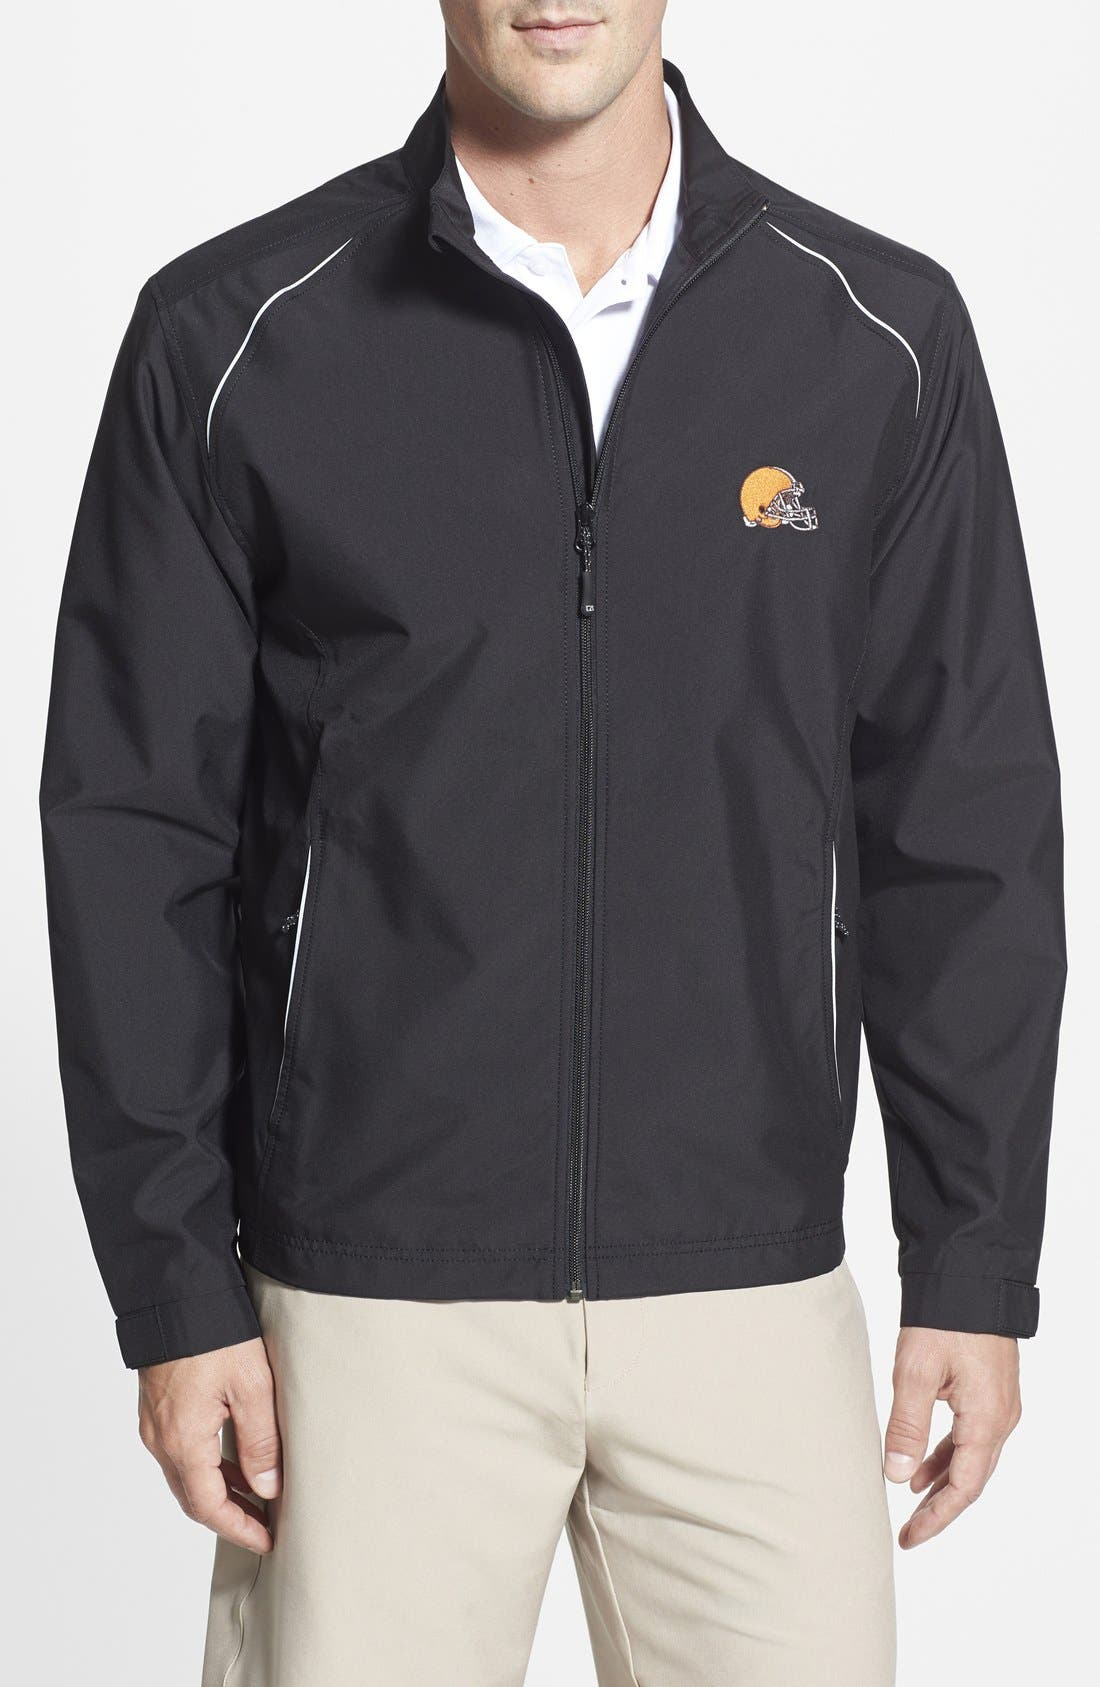 Cleveland Browns - Beacon WeatherTec Wind & Water Resistant Jacket,                             Main thumbnail 1, color,                             Black